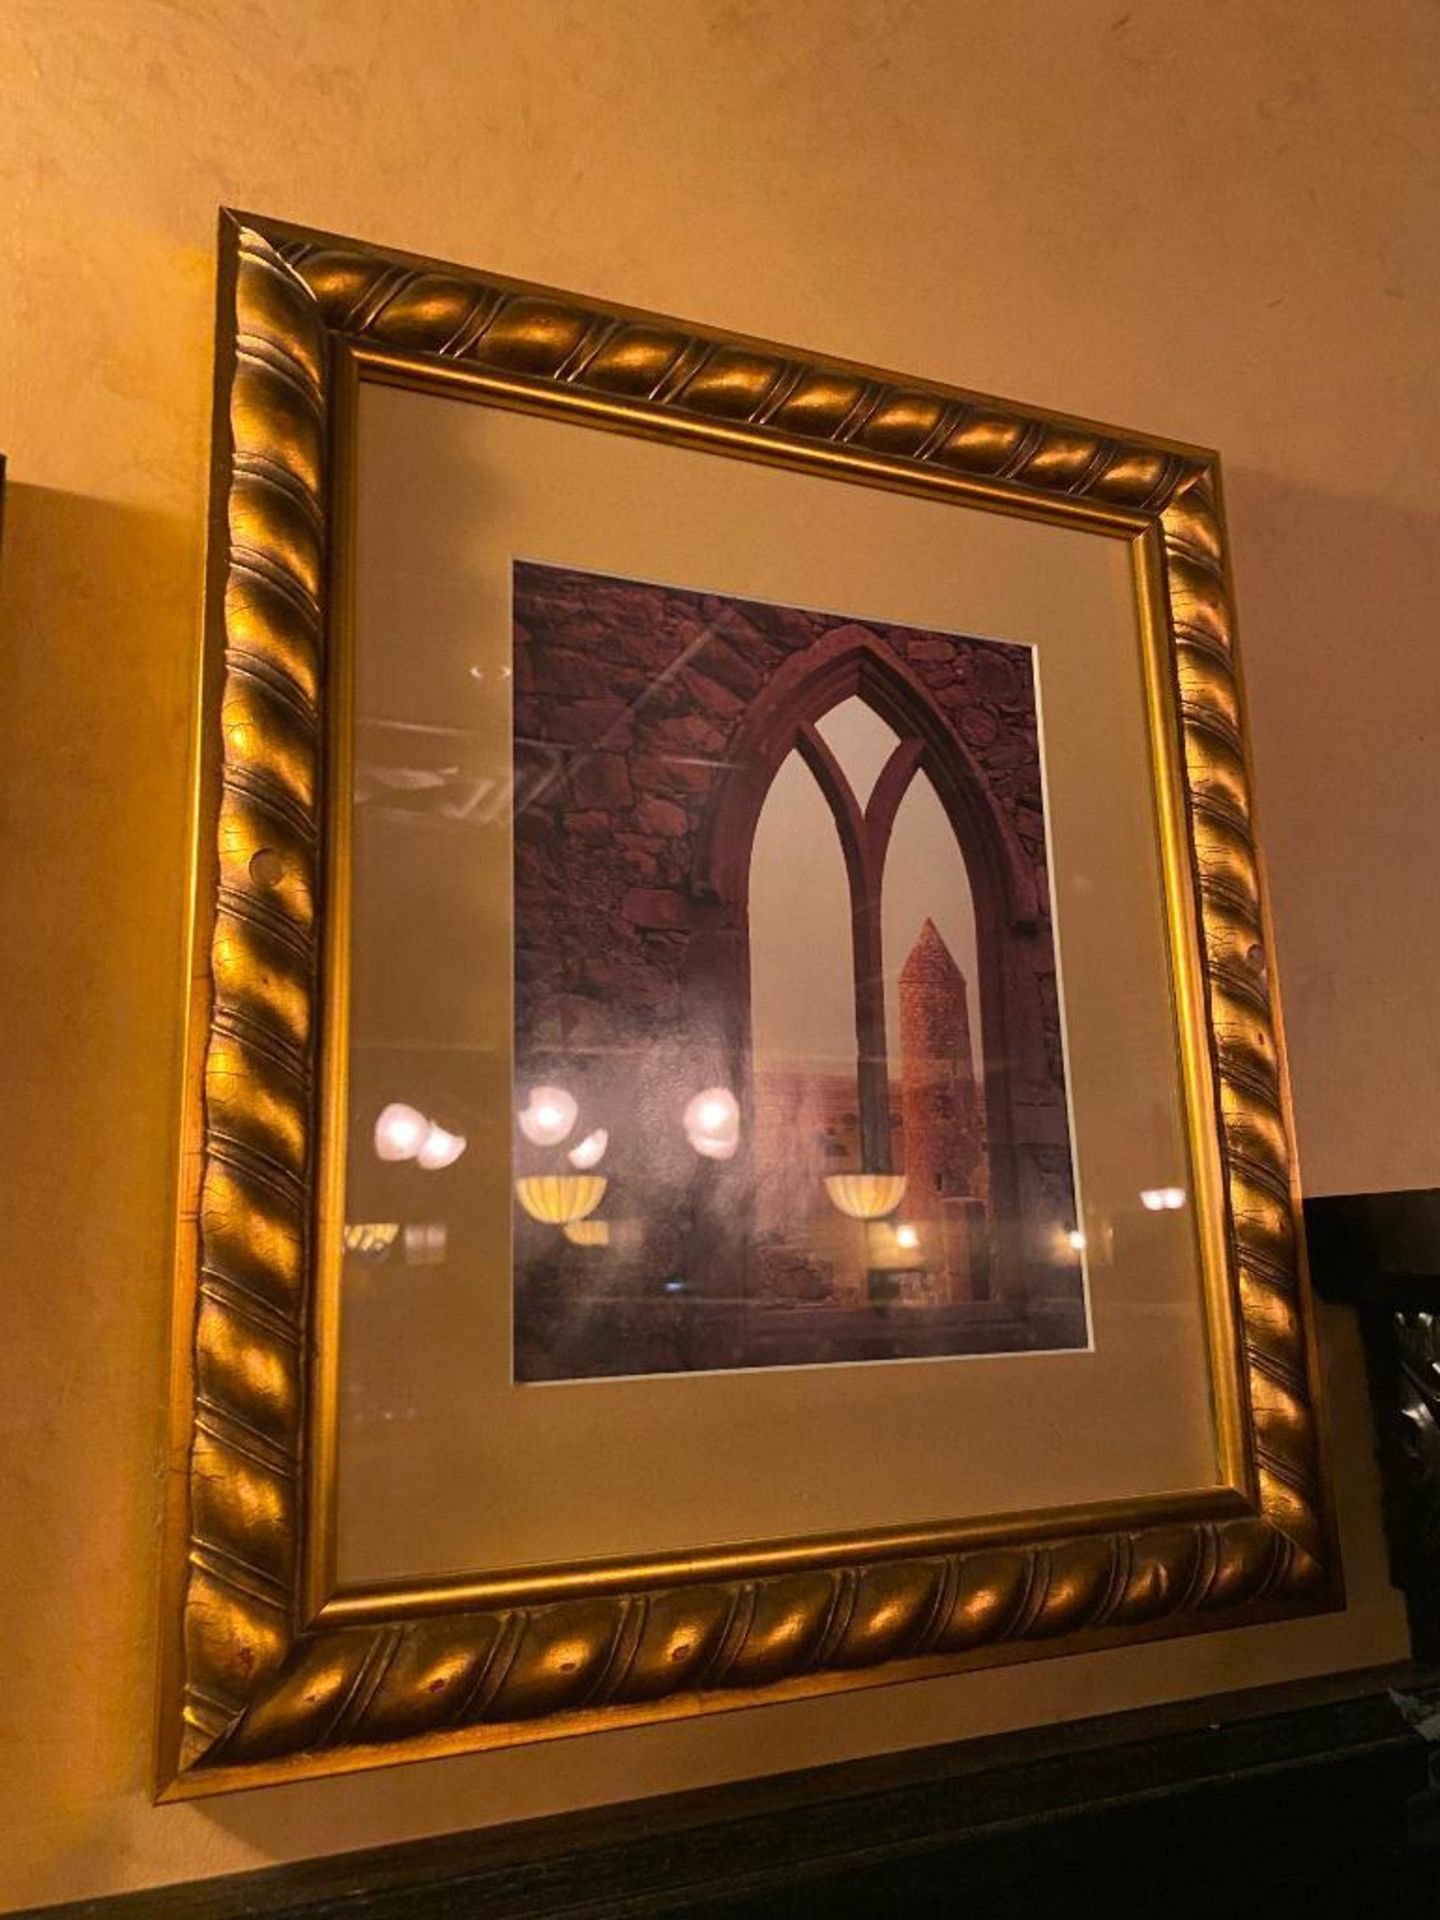 LOT OF (2) FRAMED MEMORABILIA PHOTOS & (1) SMITHWICK'S MIRROR - NOTE: REQUIRES REMOVAL FROM WALL, PL - Image 4 of 4